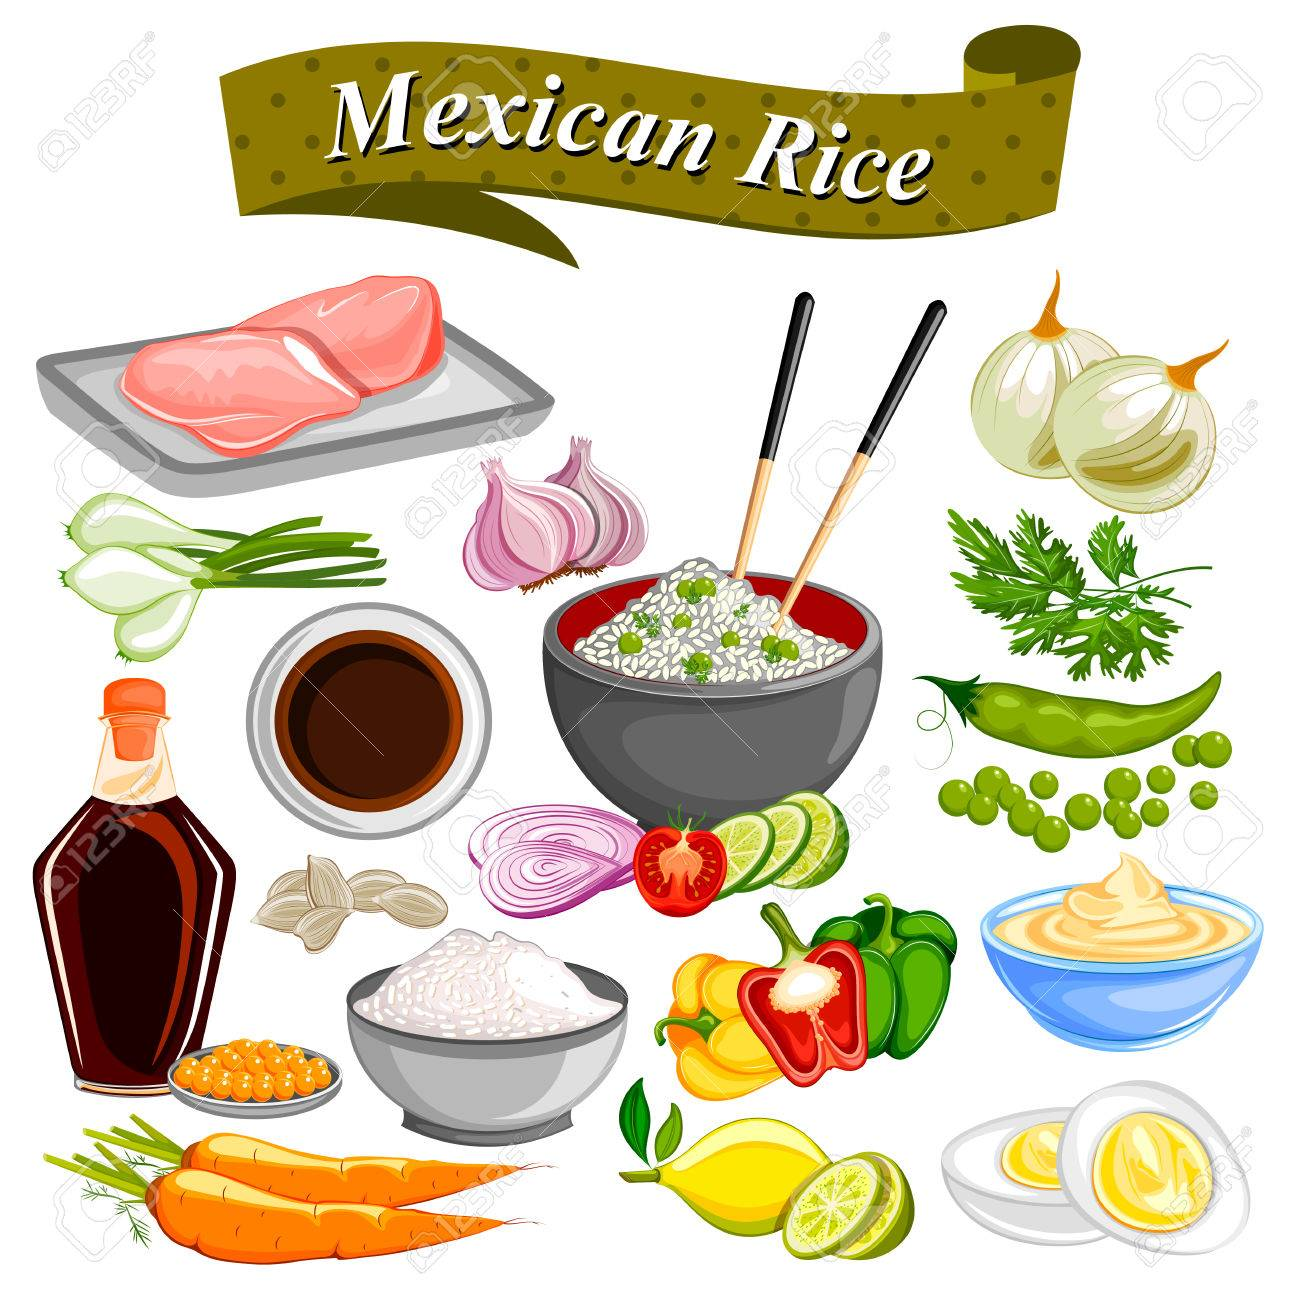 Food and Spice ingredient for Mexican Rice Bowl.